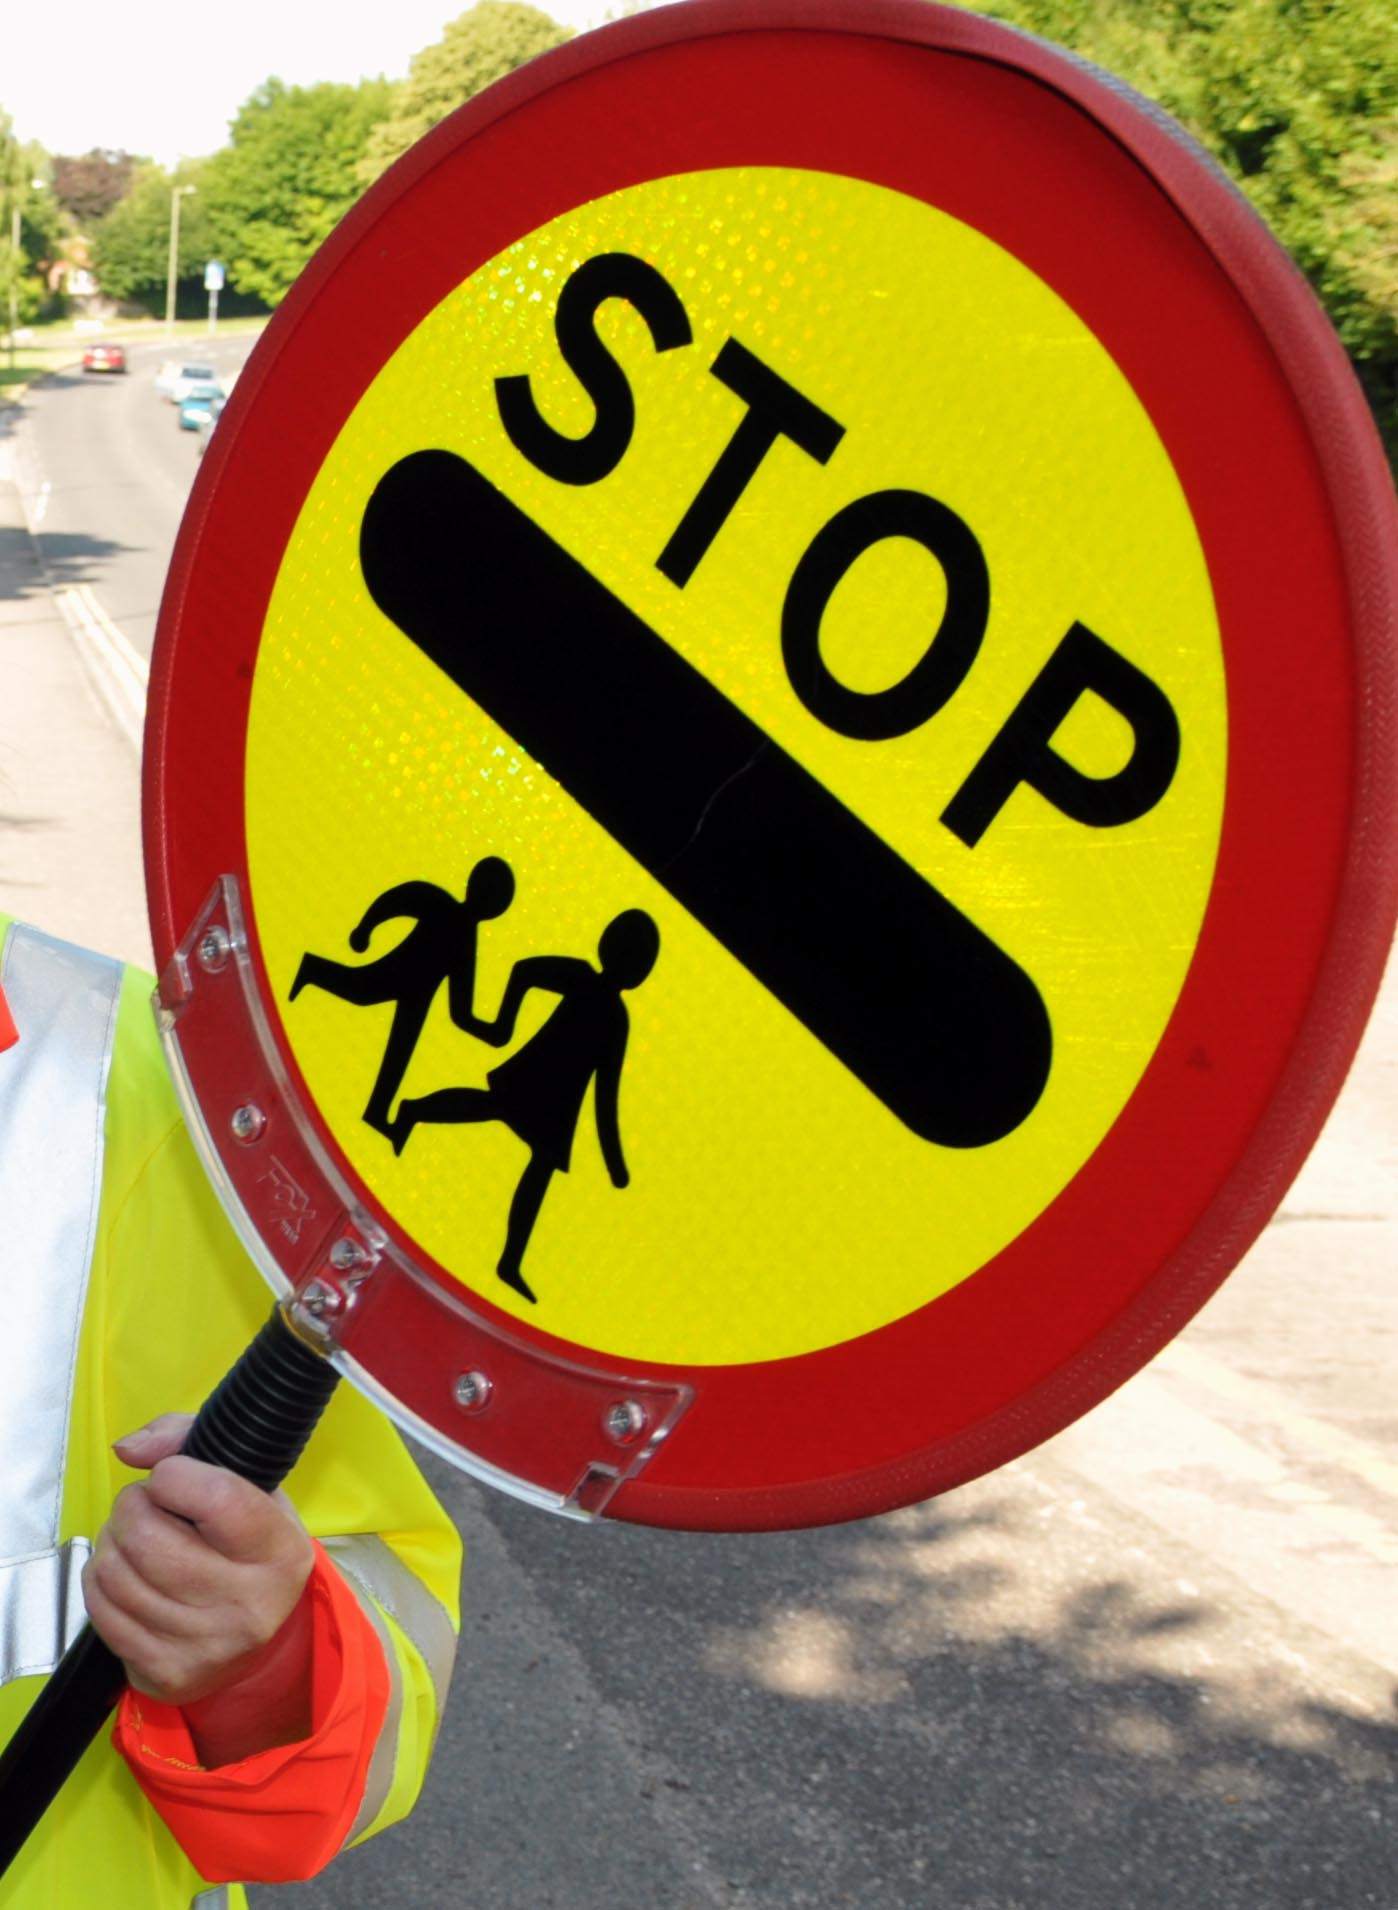 Cuts considered for school crossing patrols